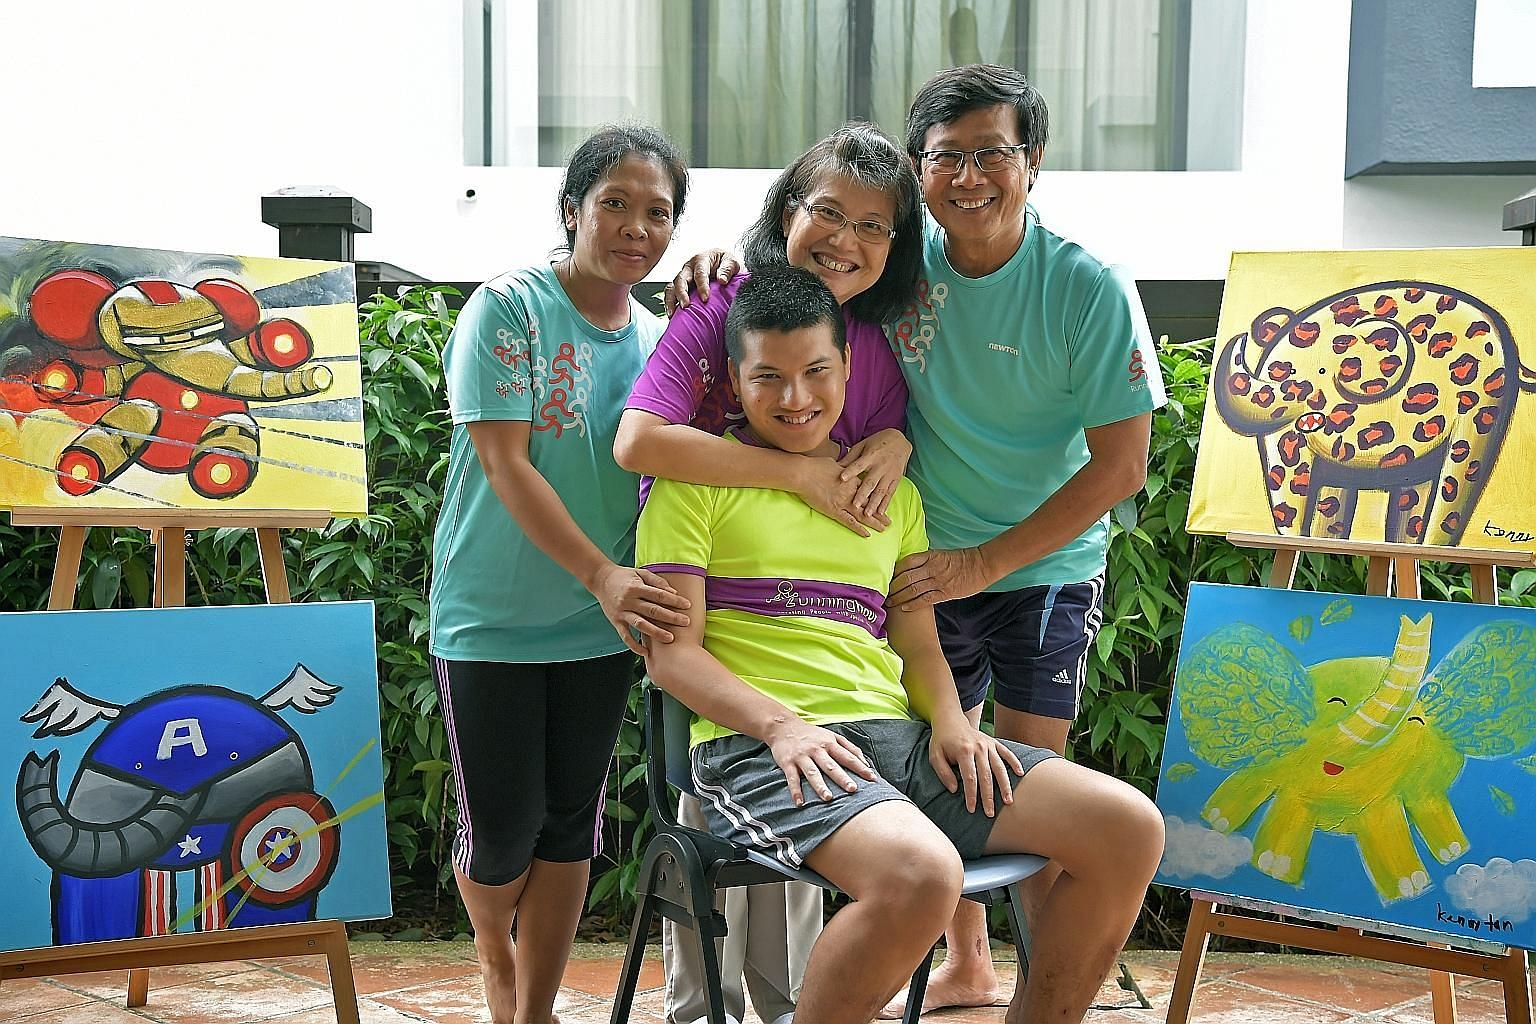 Mr Kenny Tan, 24, with his parents - housewife Selina Tan, 63, and retiree Vincent Tan, 64 - and their helper Nova Baniaga, 36. Mr Tan's family will be selling prints of his artwork, with half of the proceeds going to Runninghour. Last year, Mr Tan's